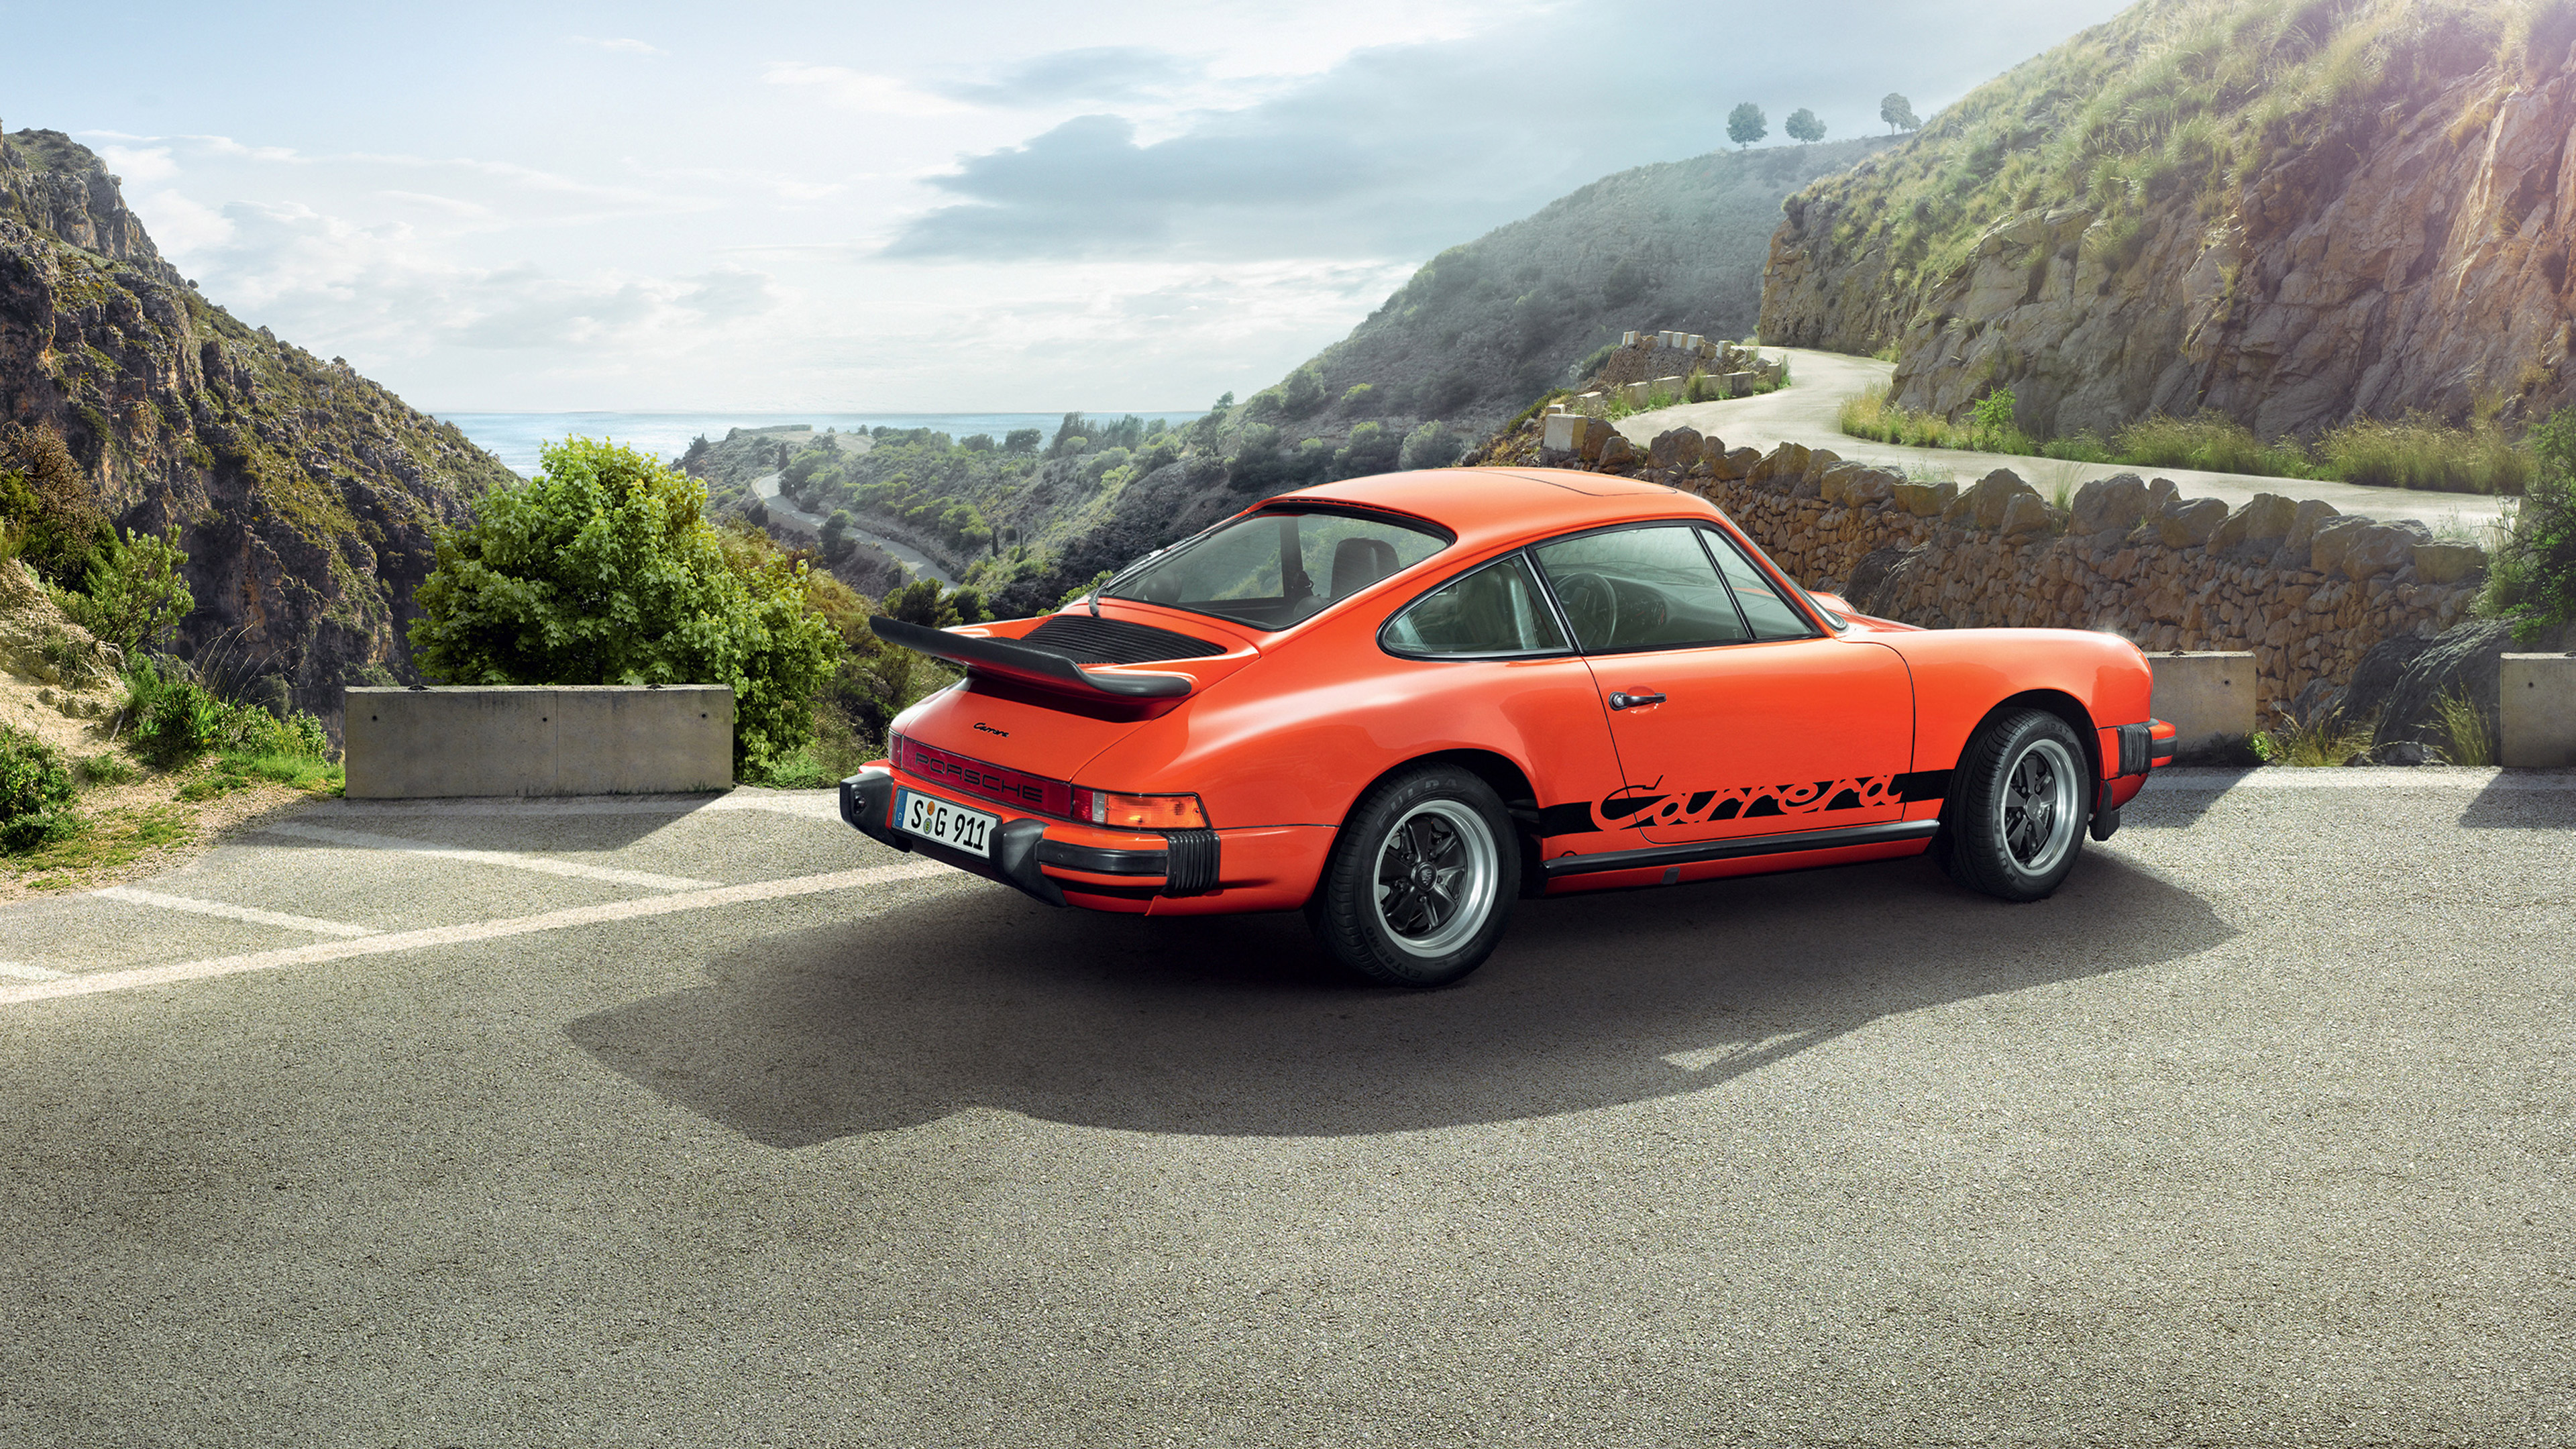 porsche 911 carrera hd  hd cars  4k wallpapers  images  backgrounds  photos and pictures